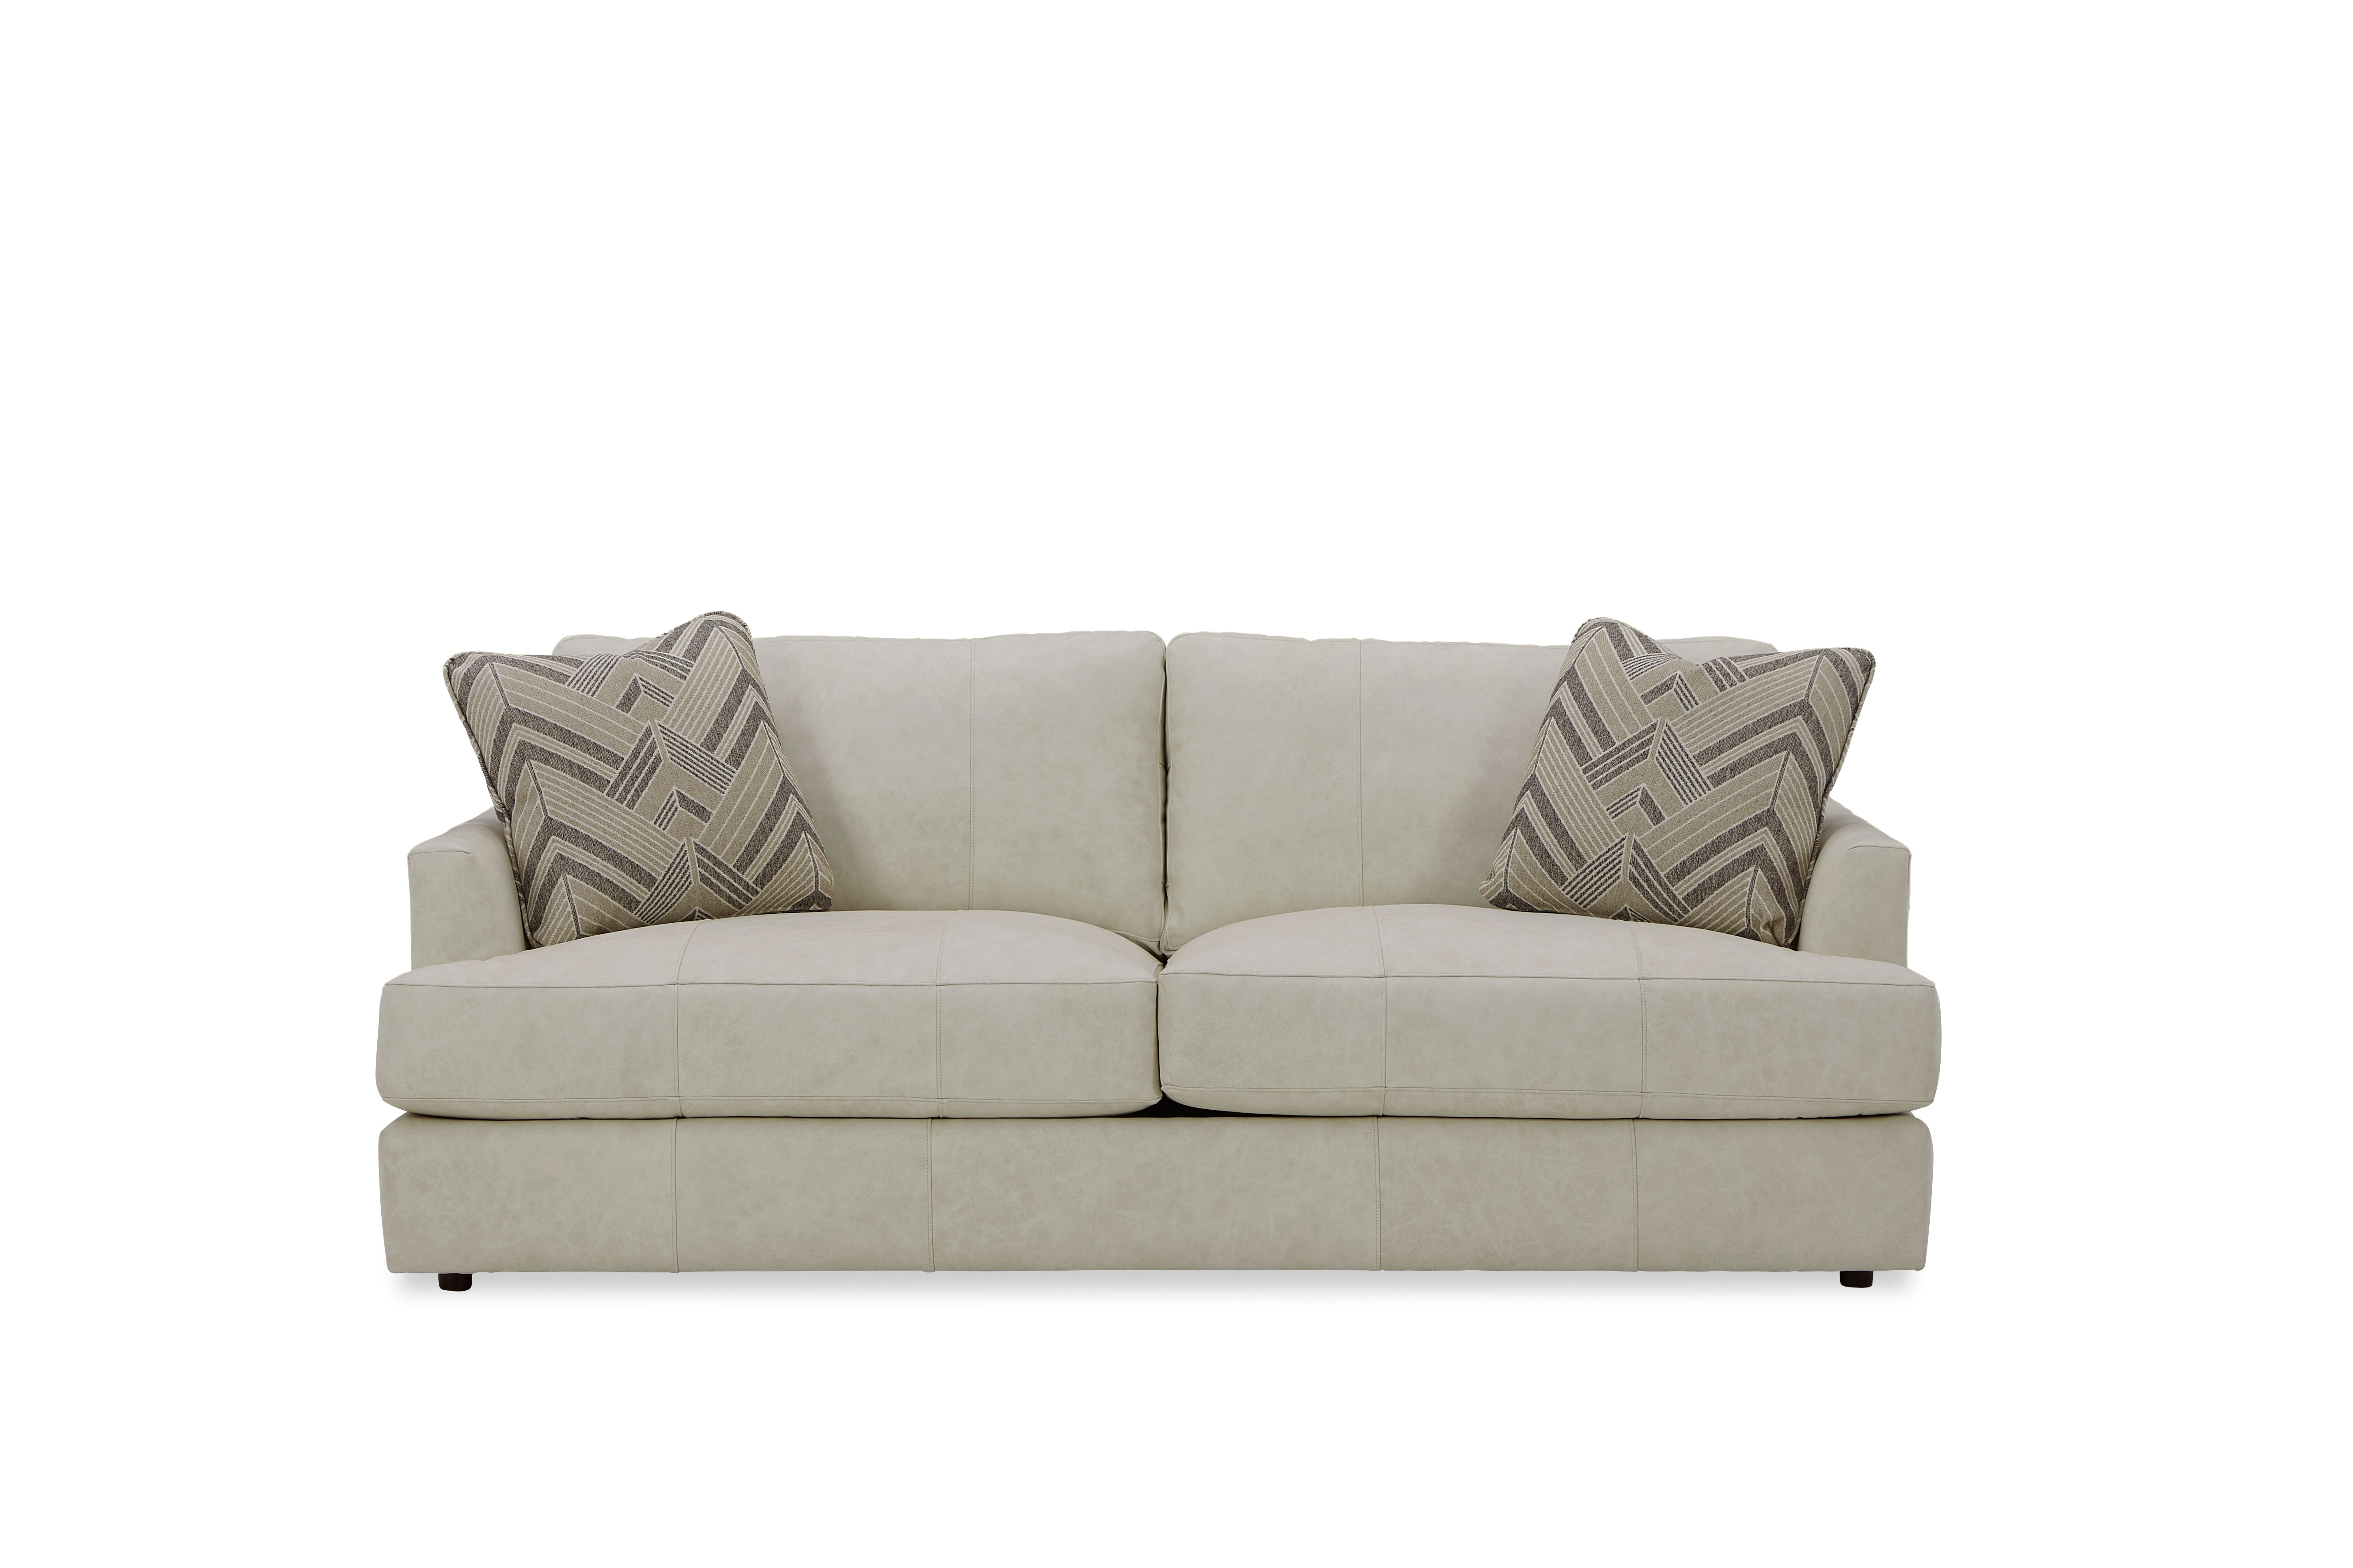 L700150BD Sofa w/ Pillows by Craftmaster at Esprit Decor Home Furnishings